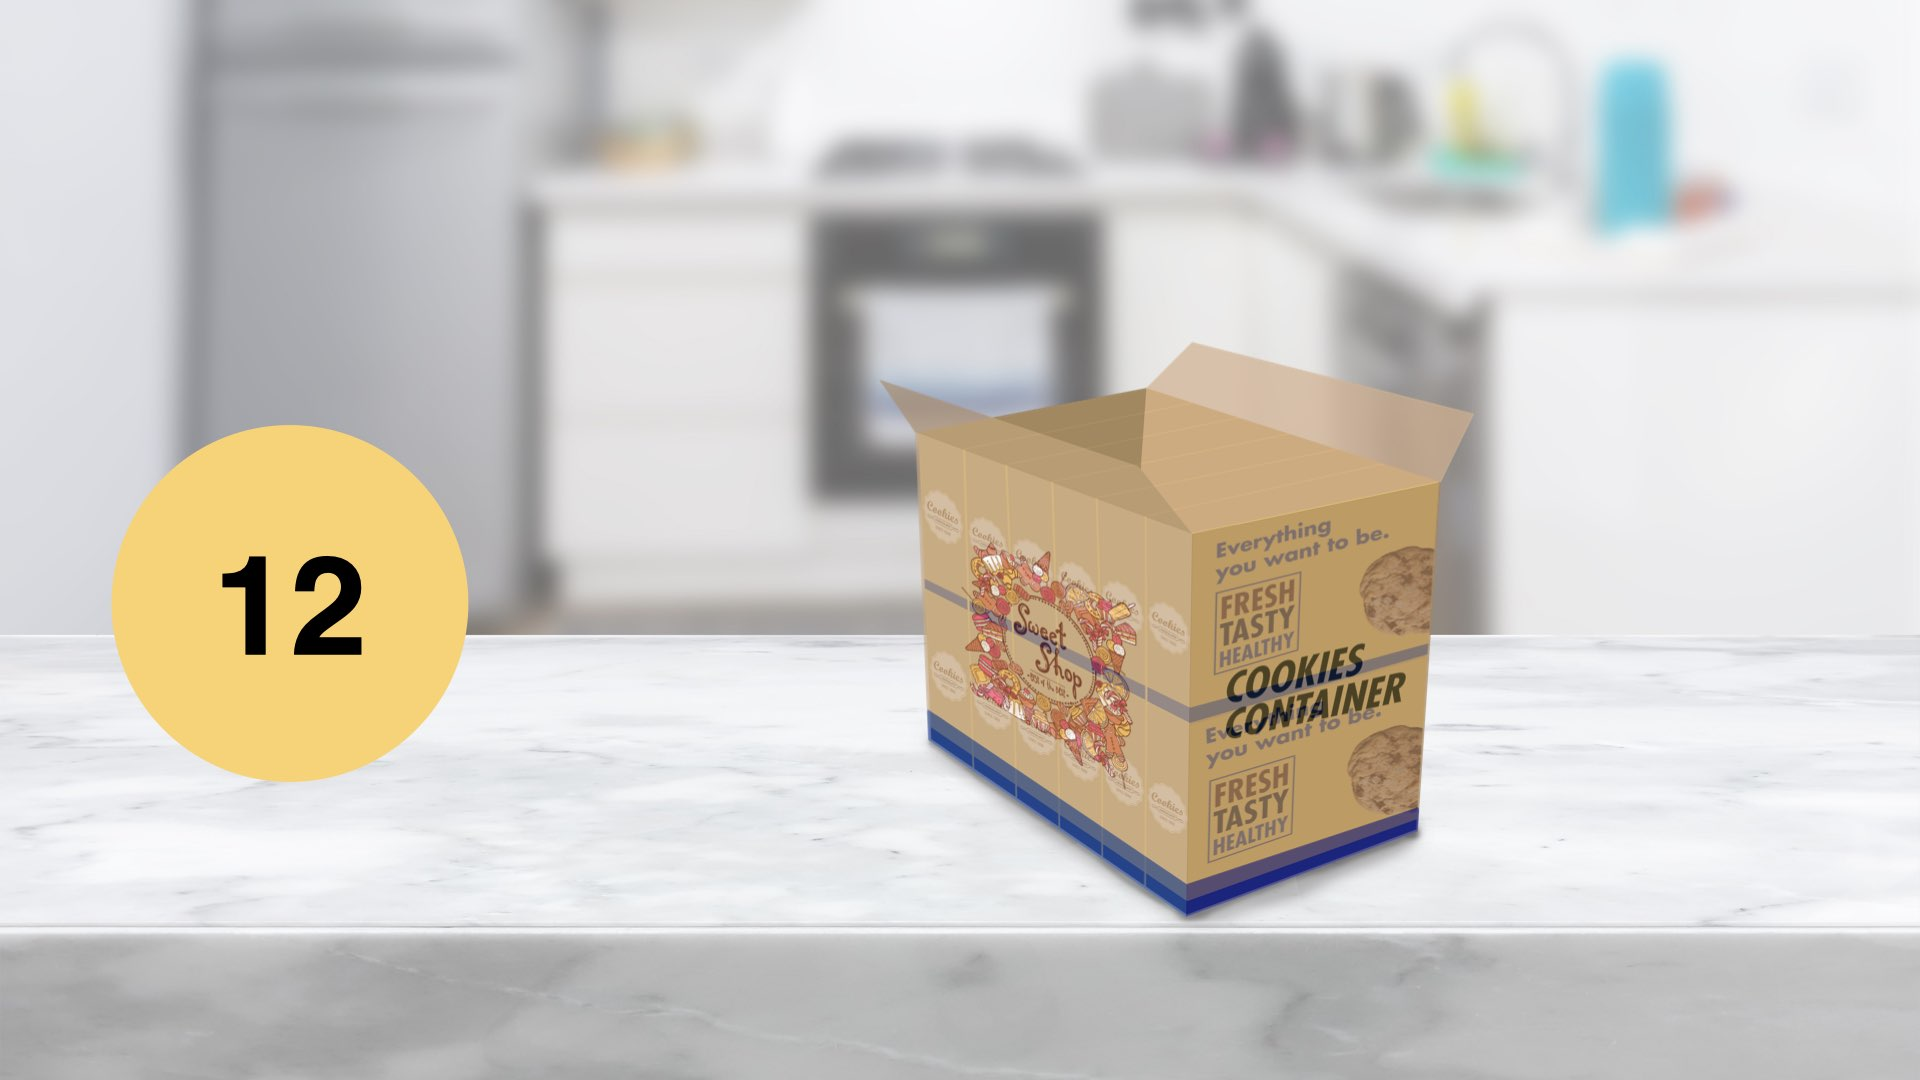 Girl Guide Cookies [Day 3] - How Many Boxes - 08 - Next Moves - Reveal Image